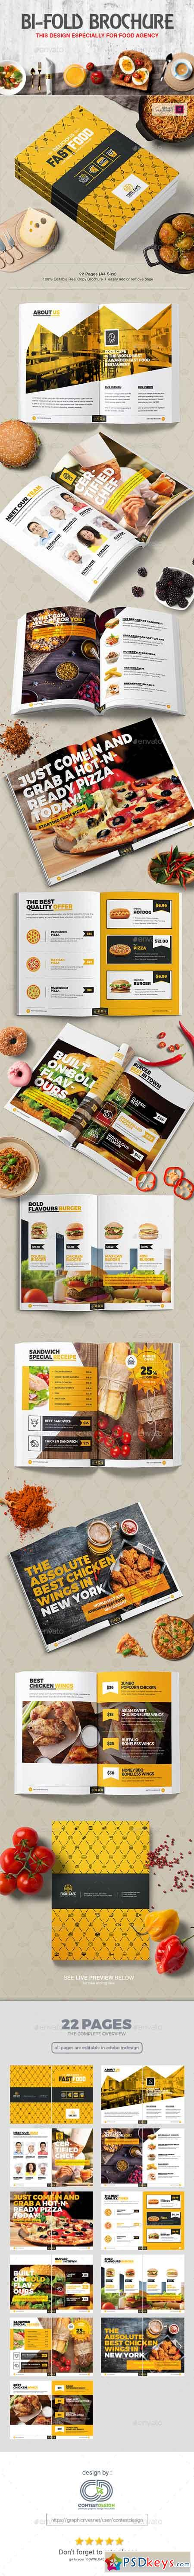 Bi-Fold Brochure Design Template for Fast Food Restaurants Cafe 20274377